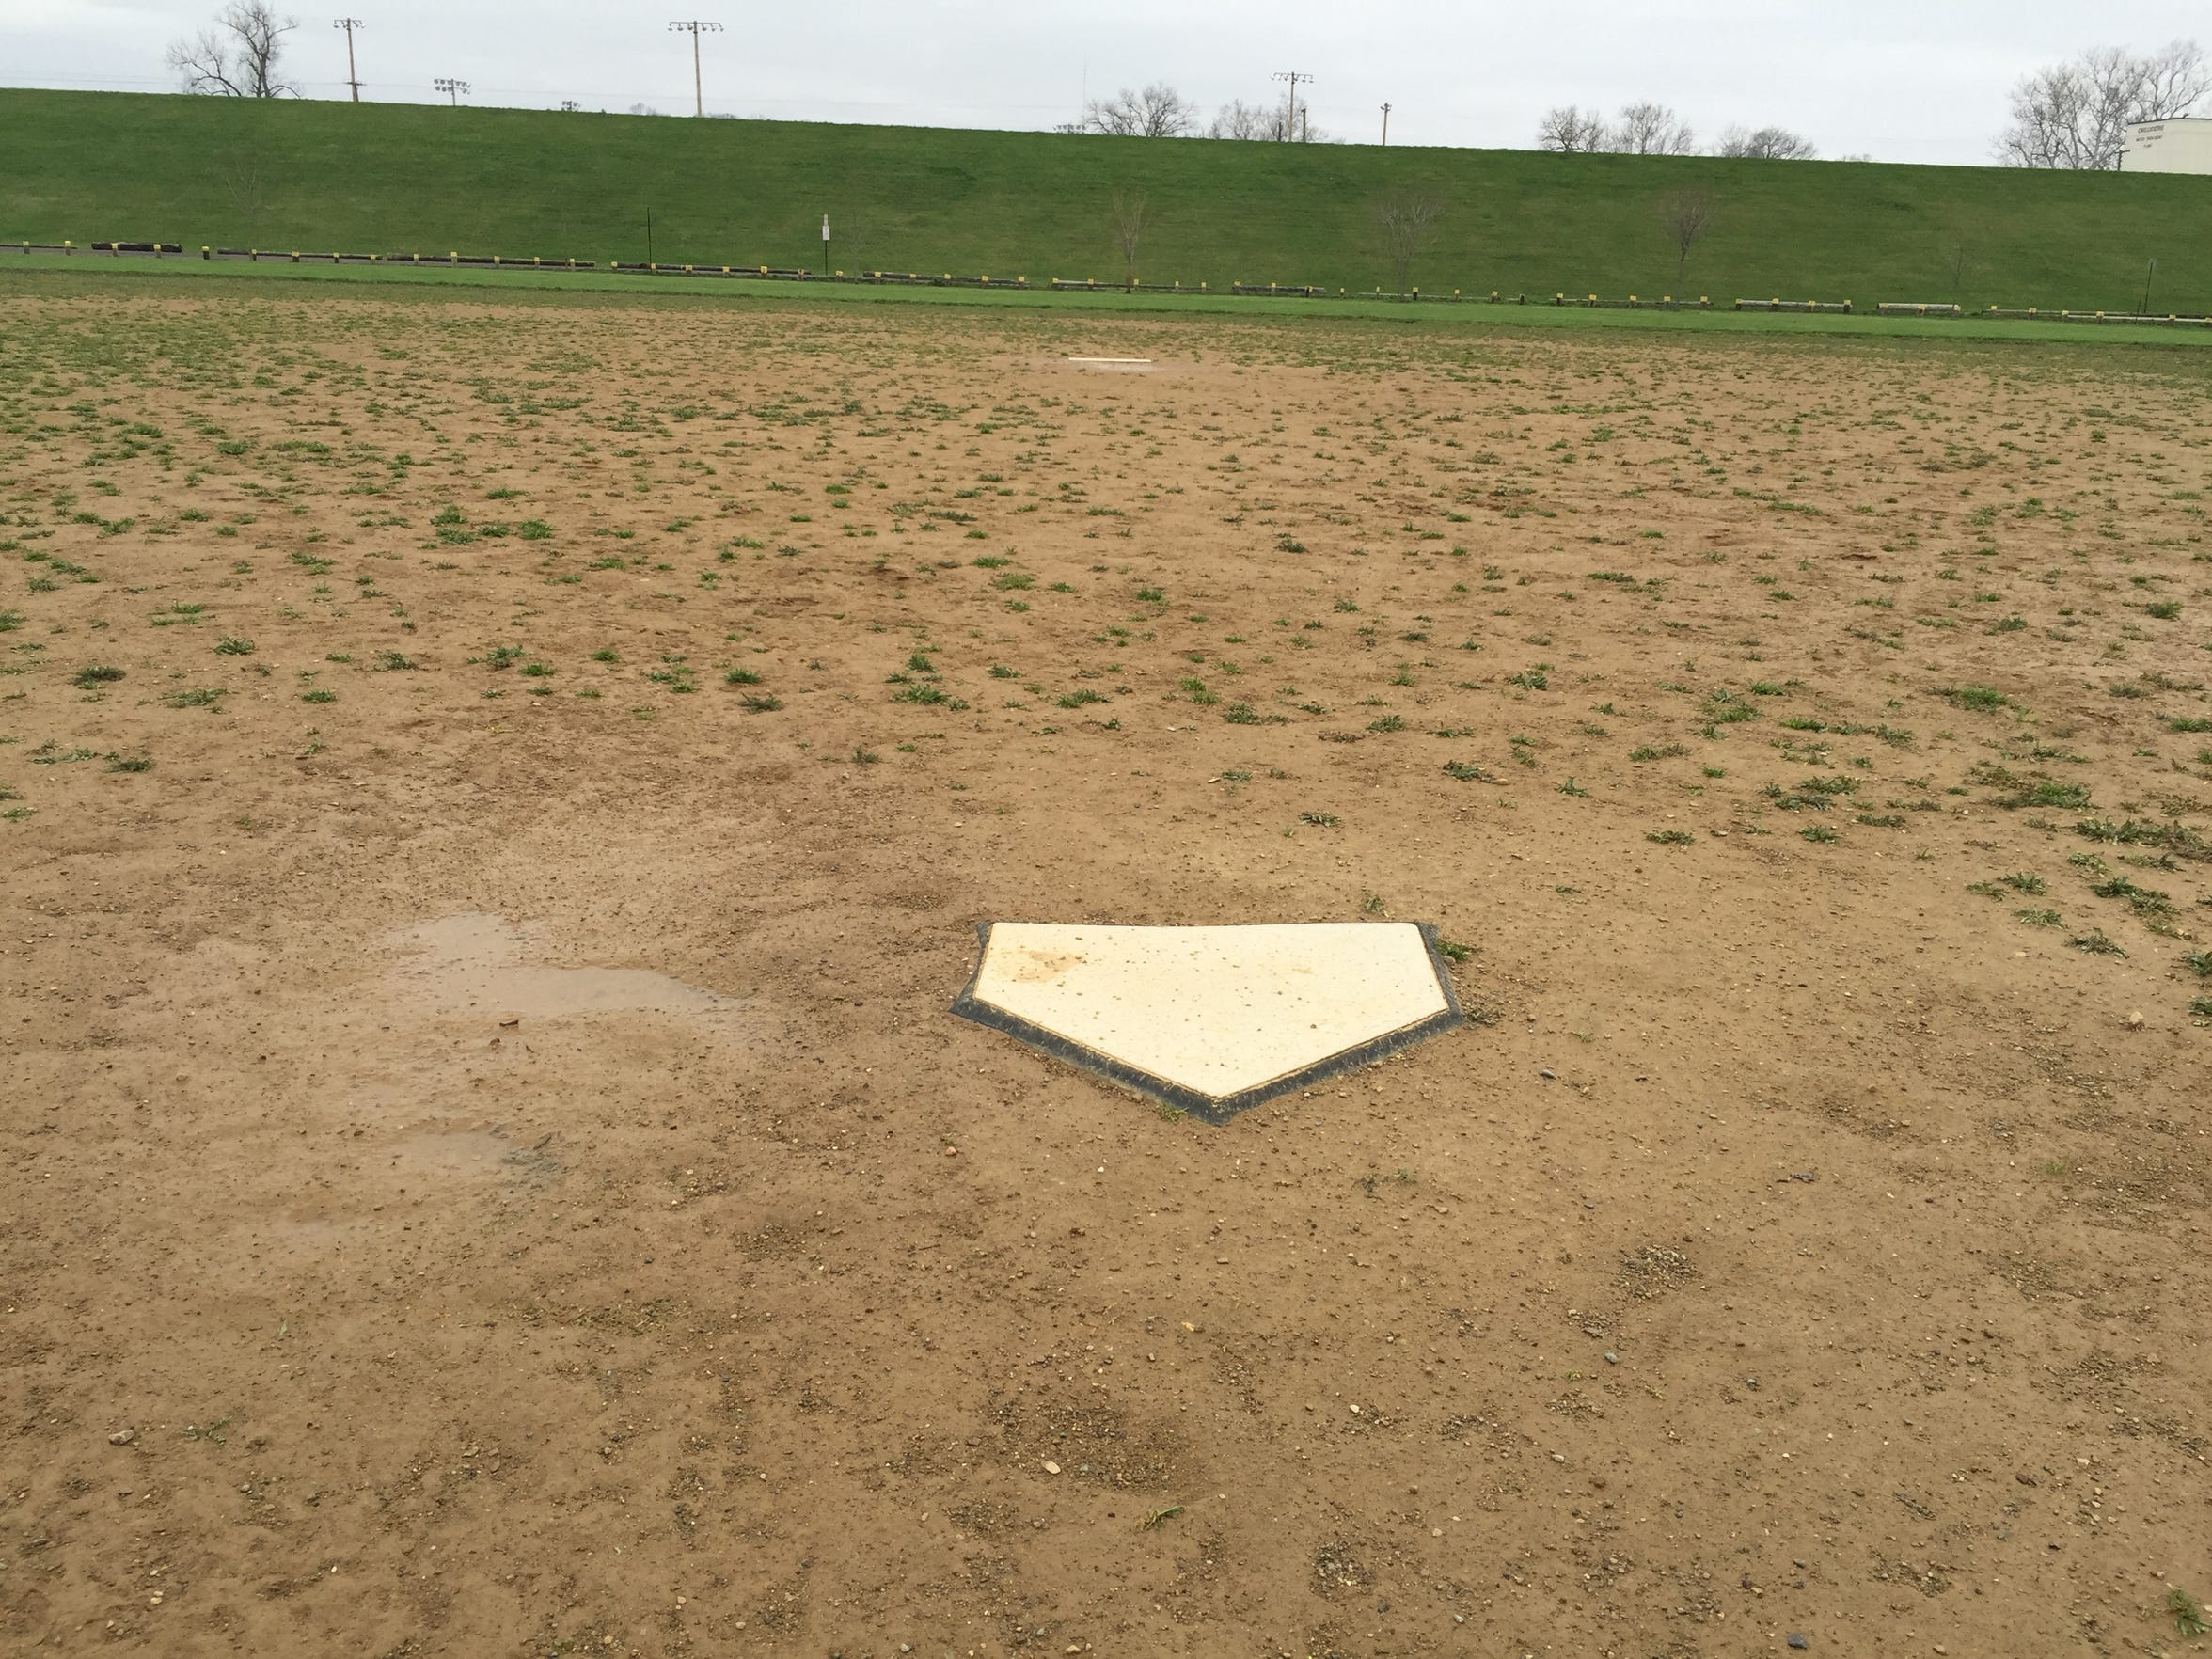 The conditions of Field G in the Yoctangee Park Annex — the same diamond Chillicothe's softball program called home — are shown after a rain storm. Standing water, no outfield fence, patches of grass on a dirt infield and no dugouts were frequent obstacles for the Cavaliers.